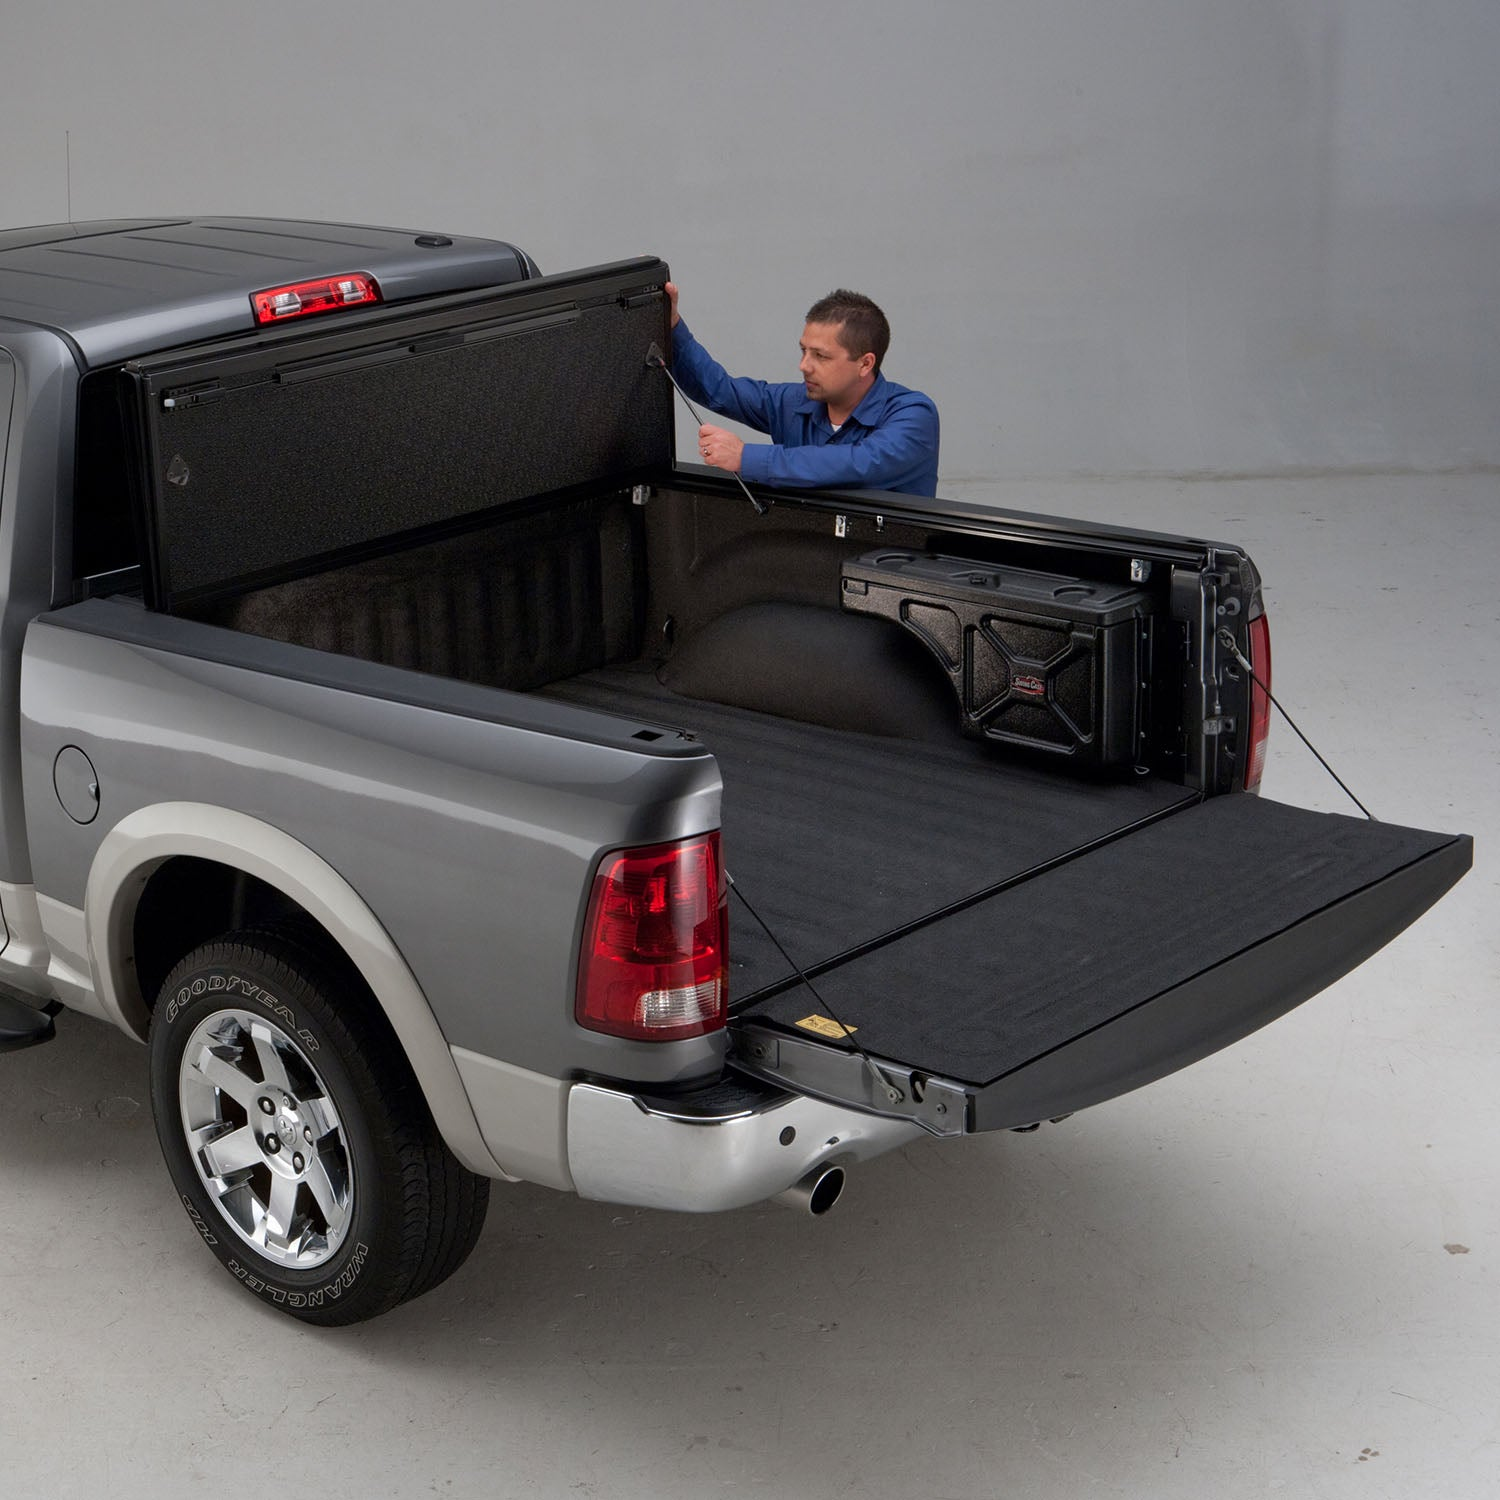 Built in prop rods secure the cover allowing your truck to be driven with the cover fully open.